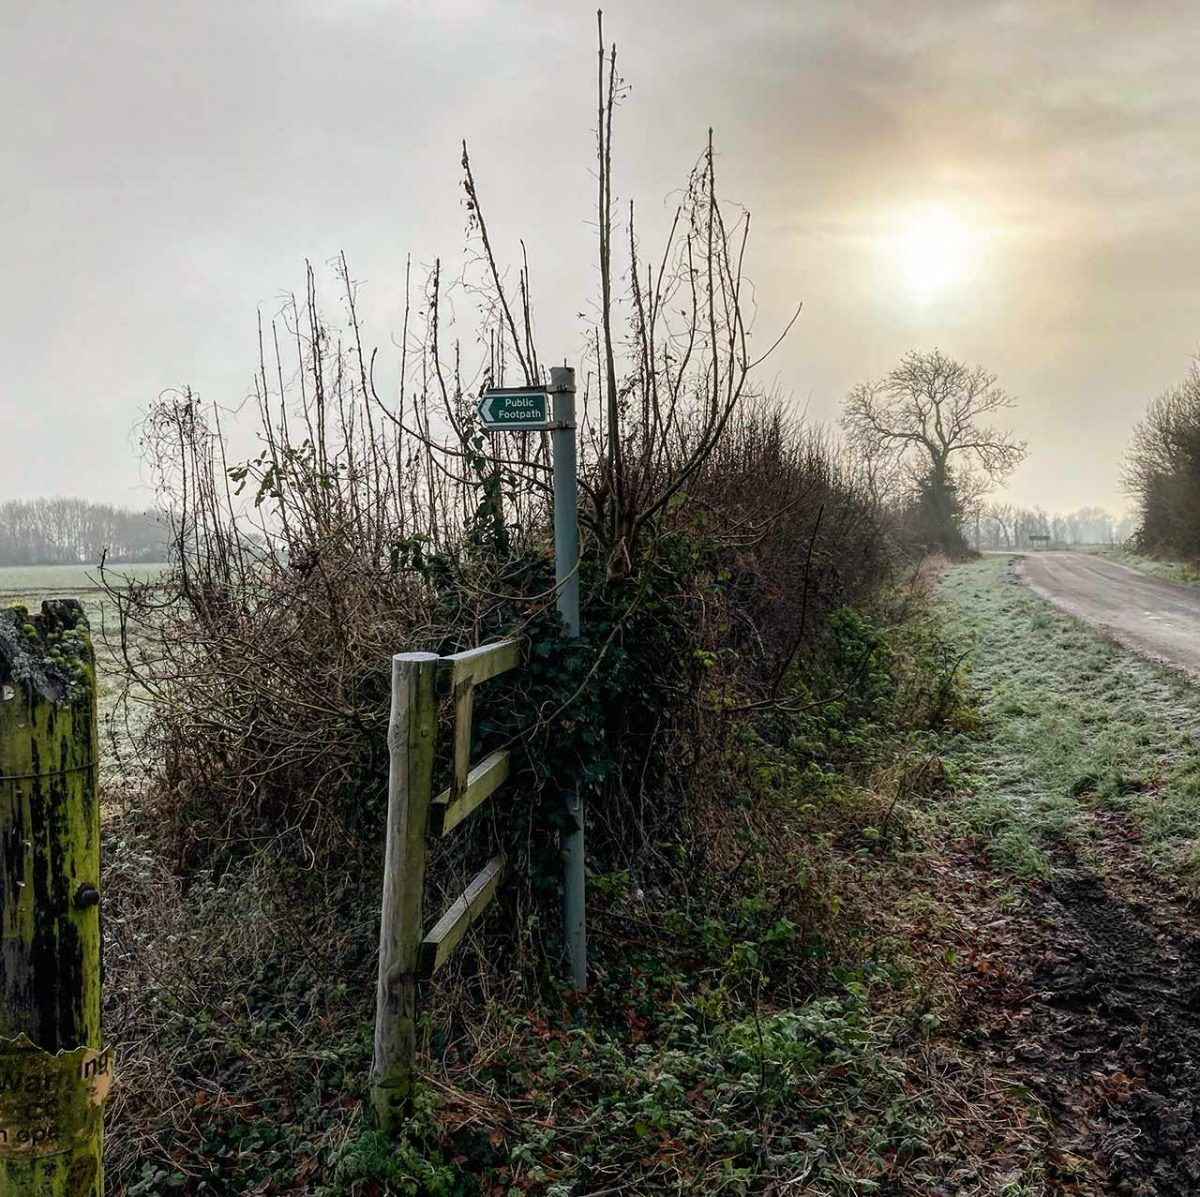 Footpath near Little Gidding Jan 21